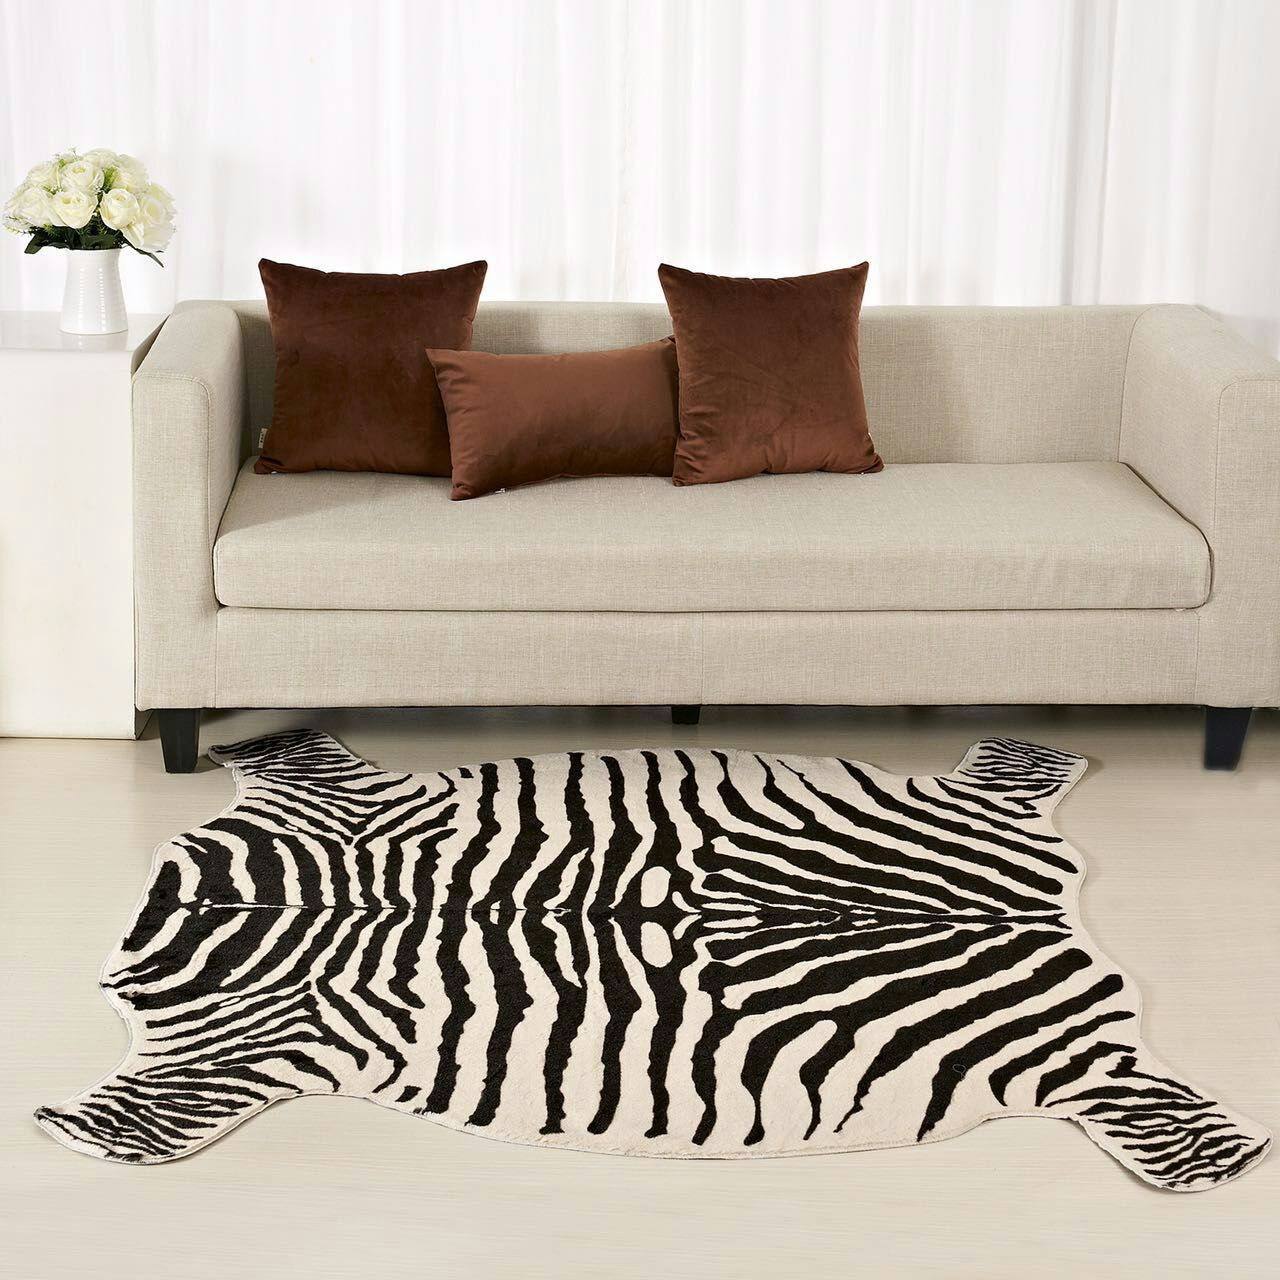 Zebra/Cow Printed Carpet PV Velvet Imitation Leather Rugs Animal Skins Natural Shape Carpets Decoration Mats